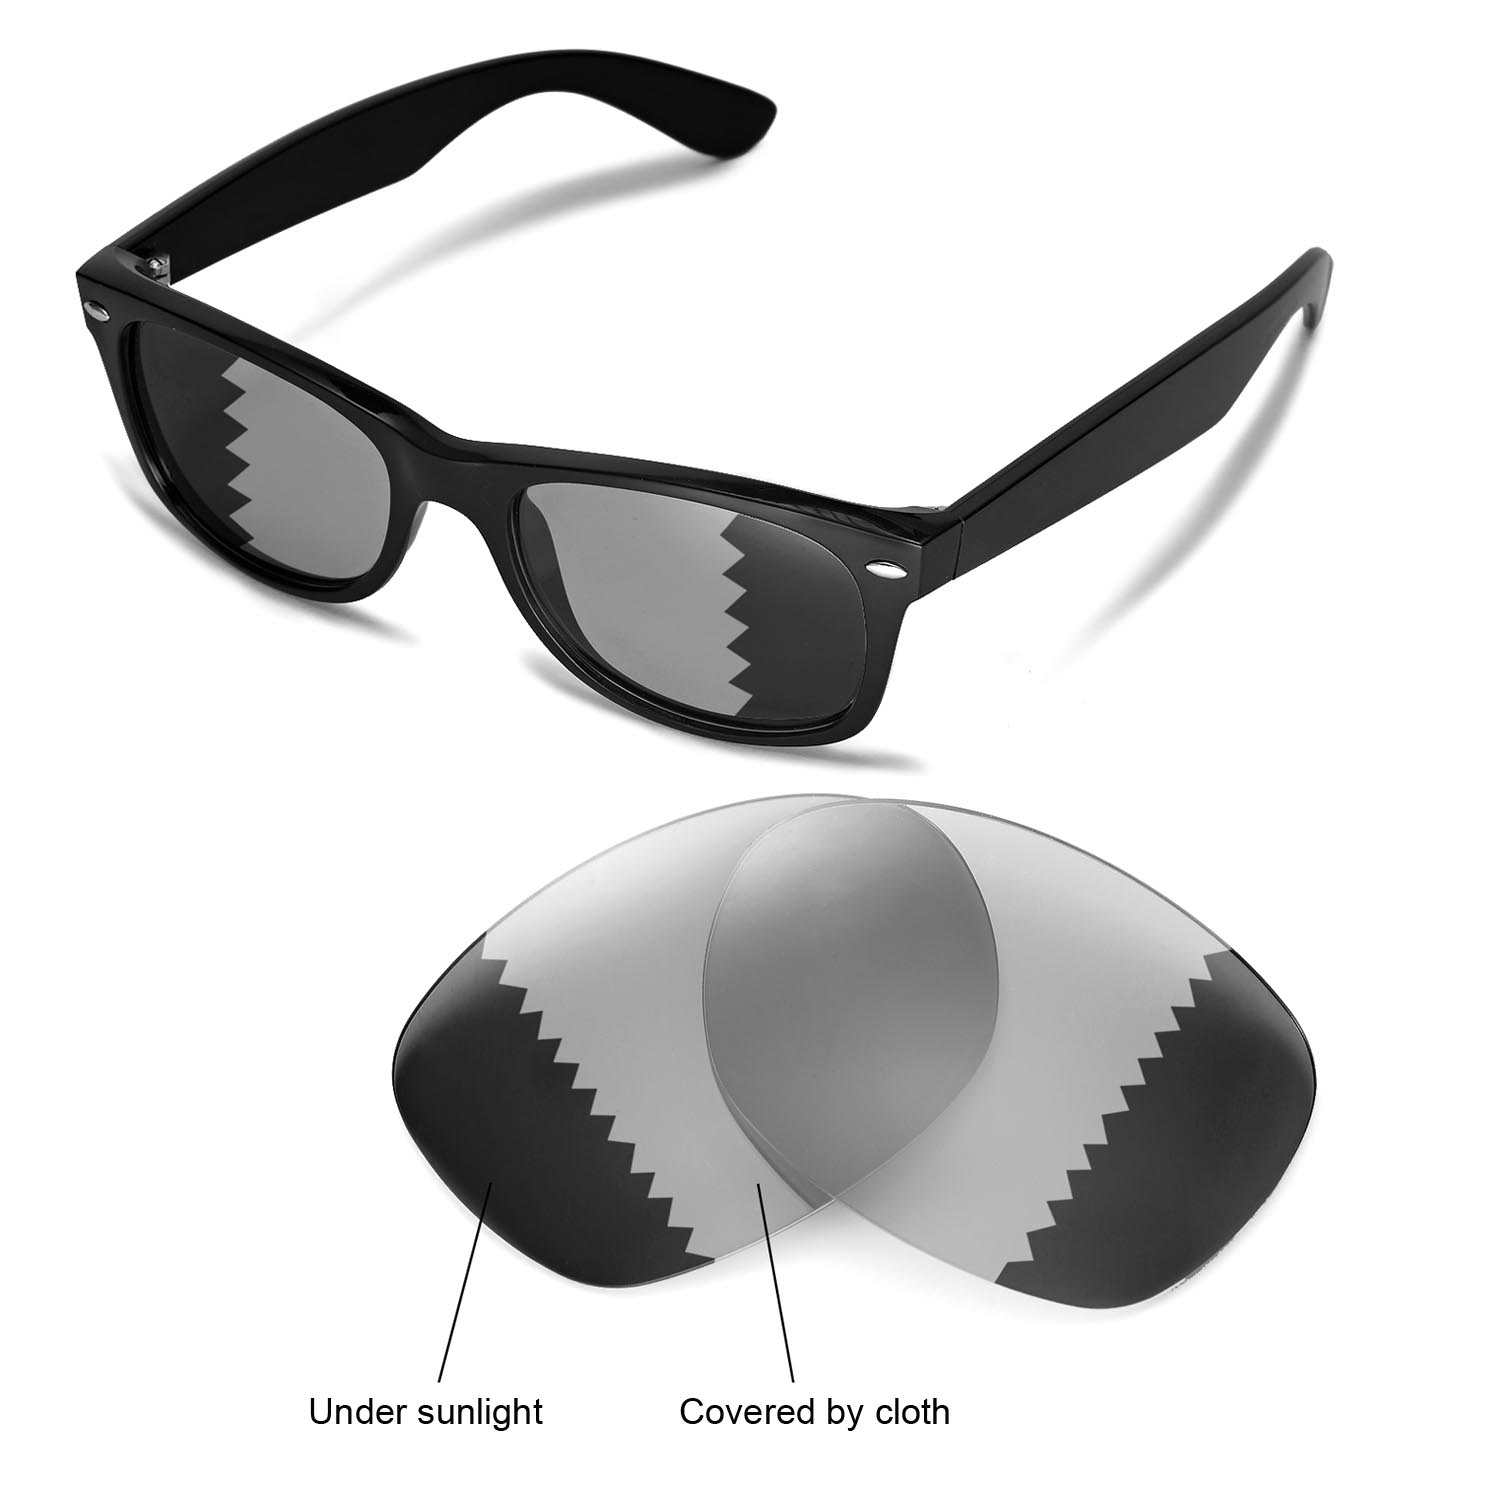 6ad053d8f5a Details about New WL Polarized Transition Photochromic Lenses For Ray-Ban  Wayfarer RB2132 52mm